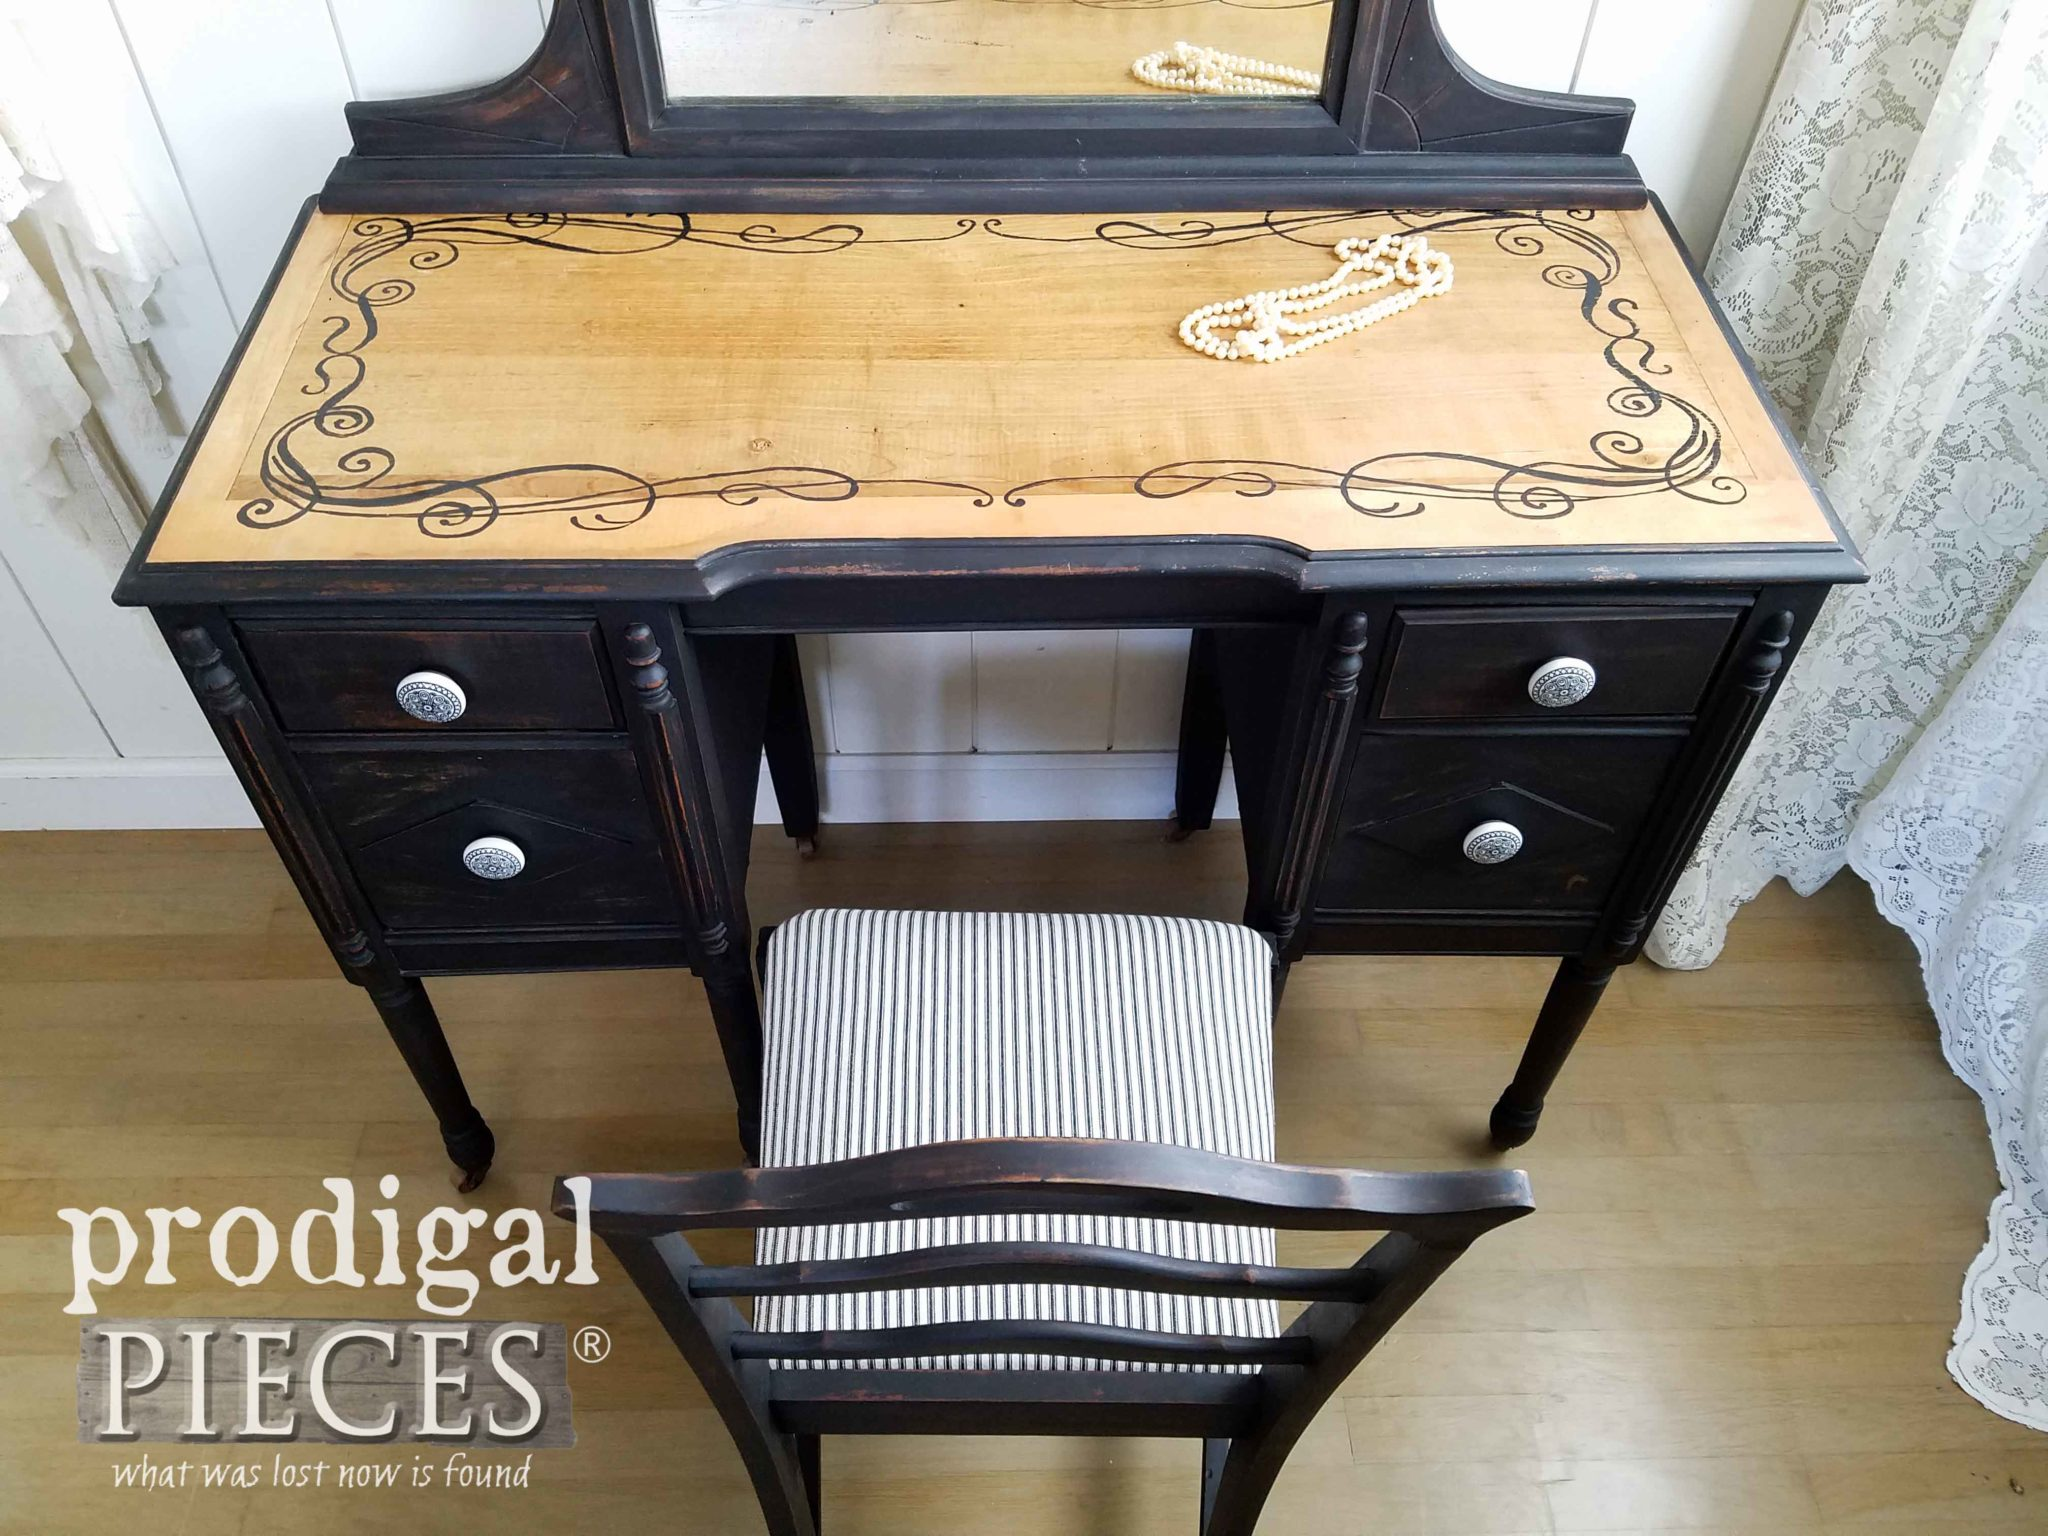 Hand Painted Antique Vanity Detail with Scrollwork Design by Larissa of Prodigal Pieces | prodigalpieces.com